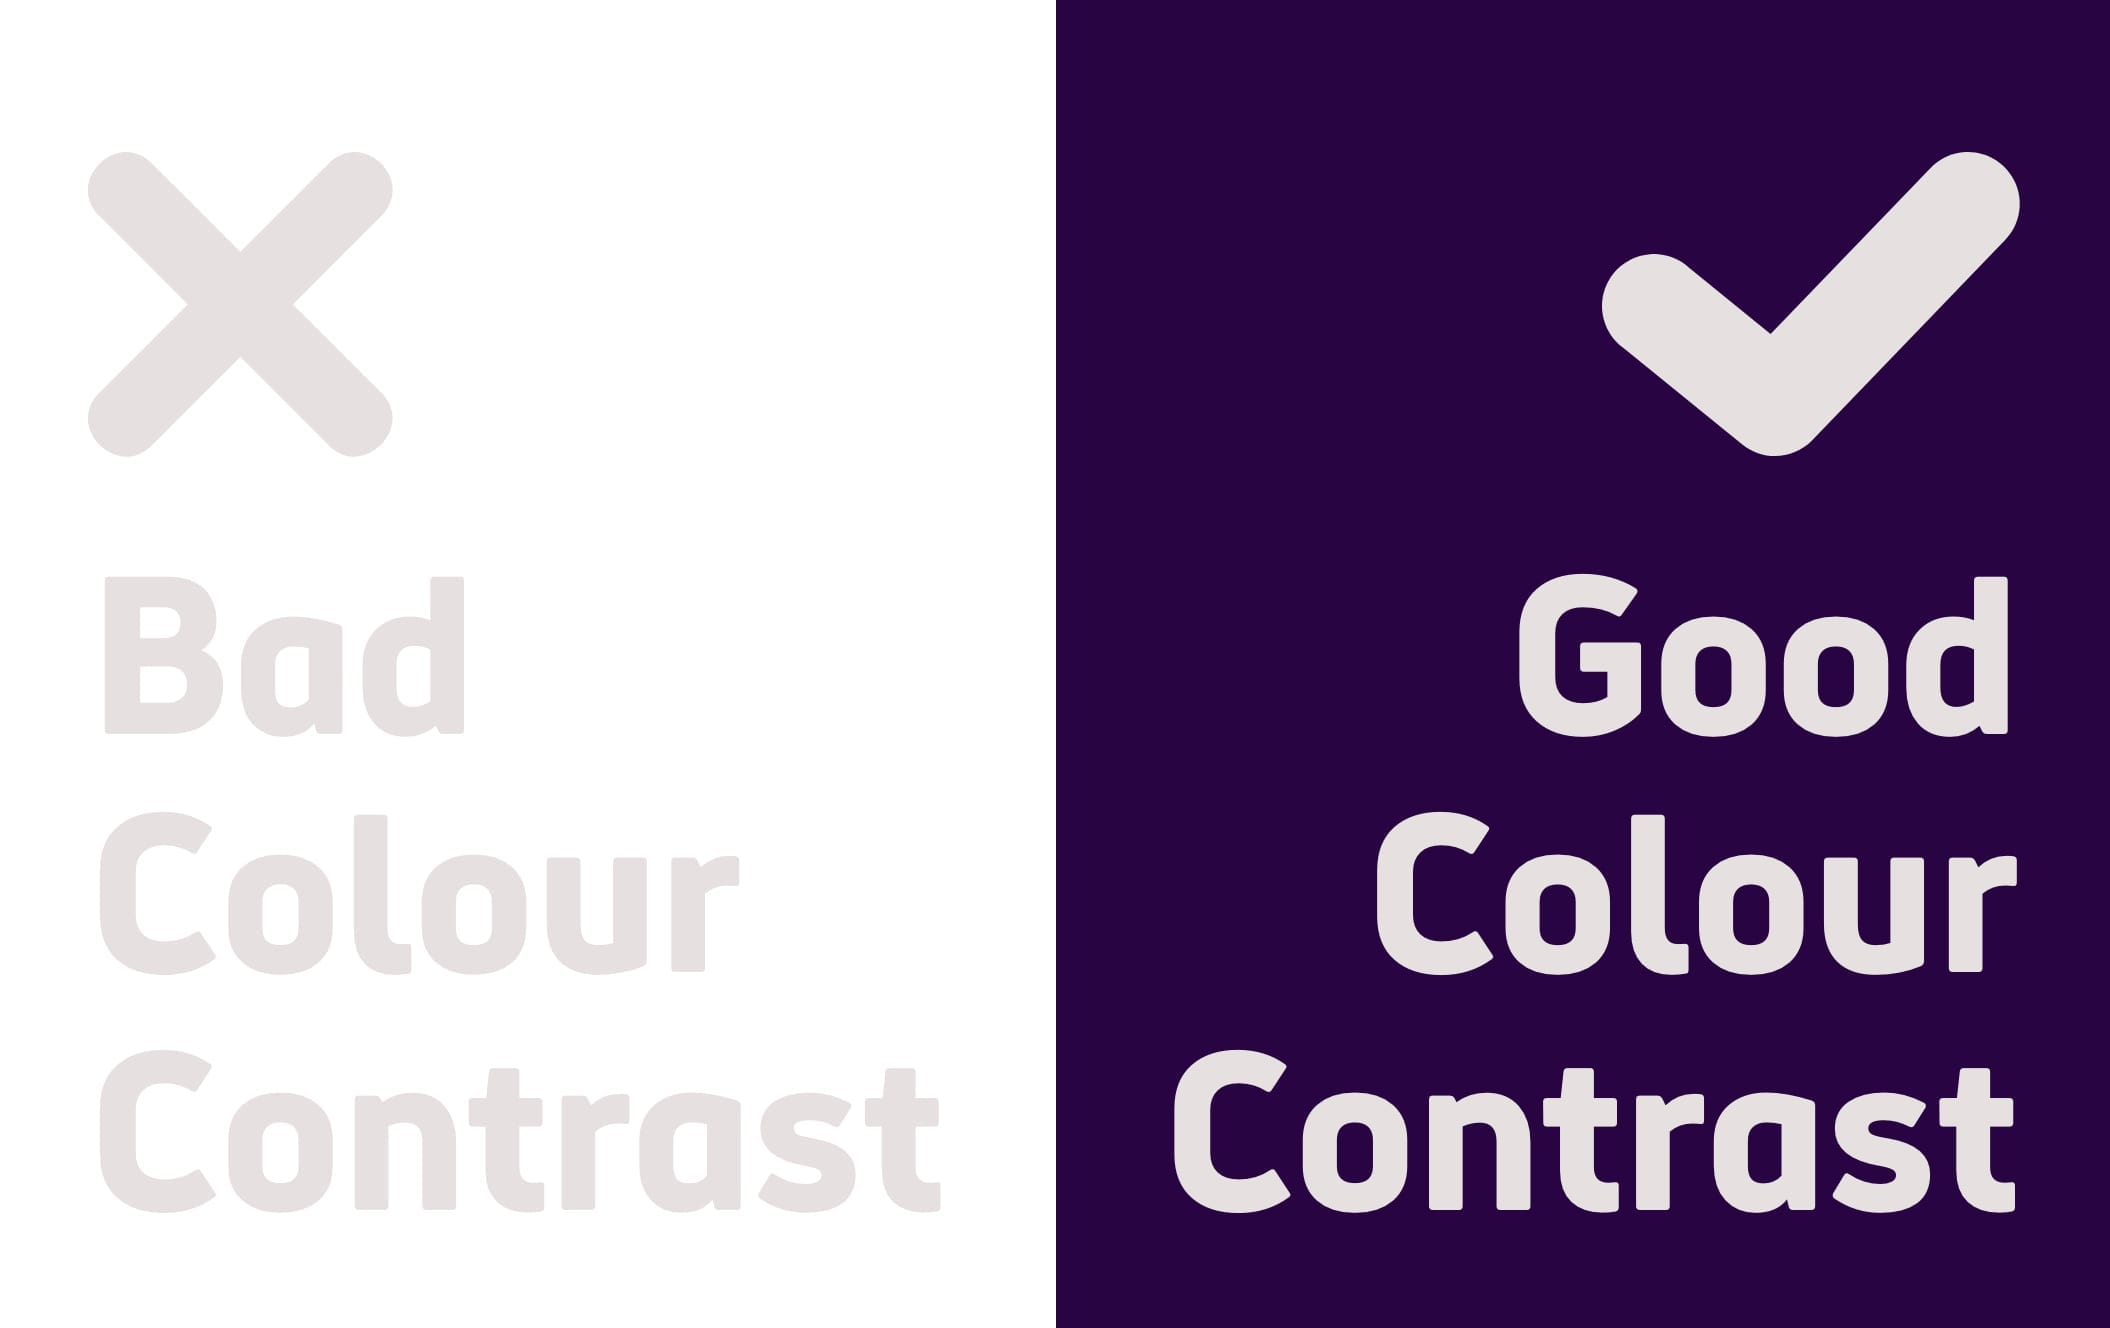 Example of good and bad colour contrast combinations for accessibility. On the left is light grey text on a white background. On the right is an example of good colour contrast with off-white text on a dark purple background.